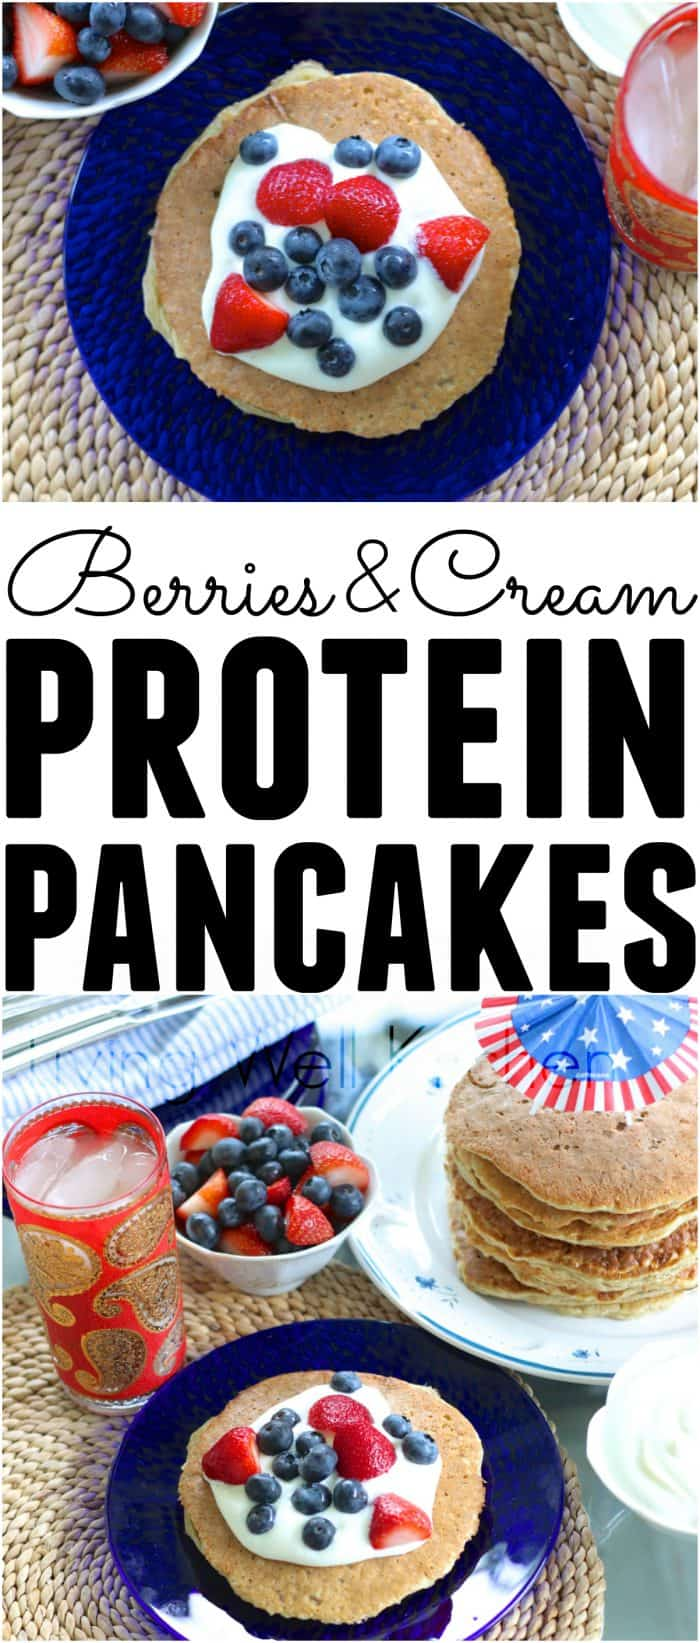 Berries and cream protein pancakes that are both festive and delicious; great for a healthy summer breakfast! Easy, protein-filled, gluten-free. Berries and Cream Protein Pancakes with homemade yogurt whipped cream from @memeinge